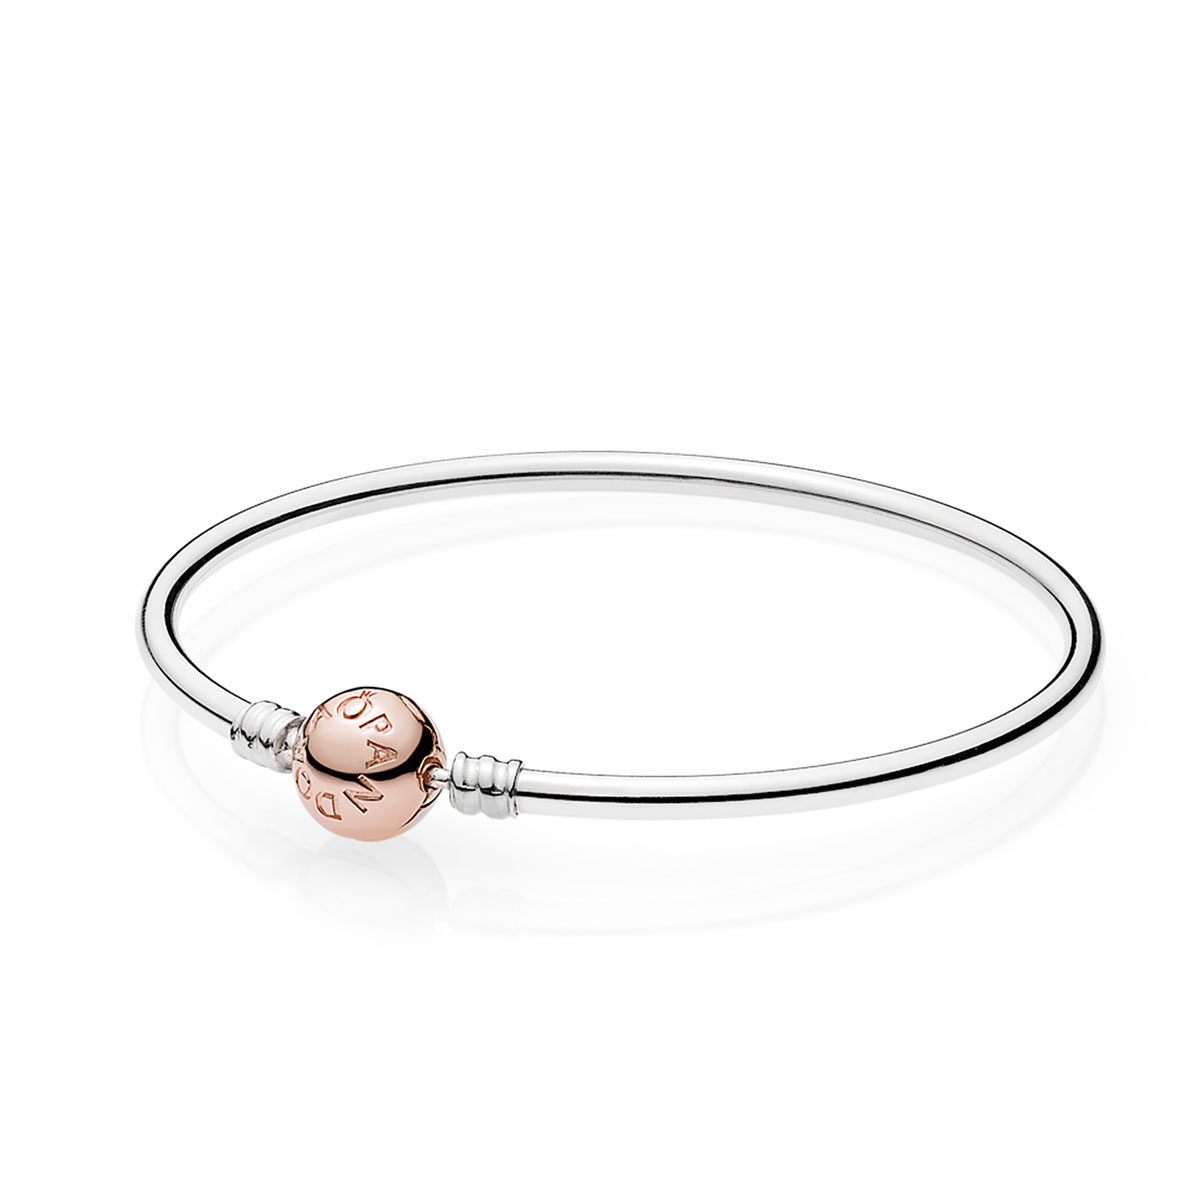 rose heart bracelets and bracelet image gold silver amp multi bangle bangles fiorelli